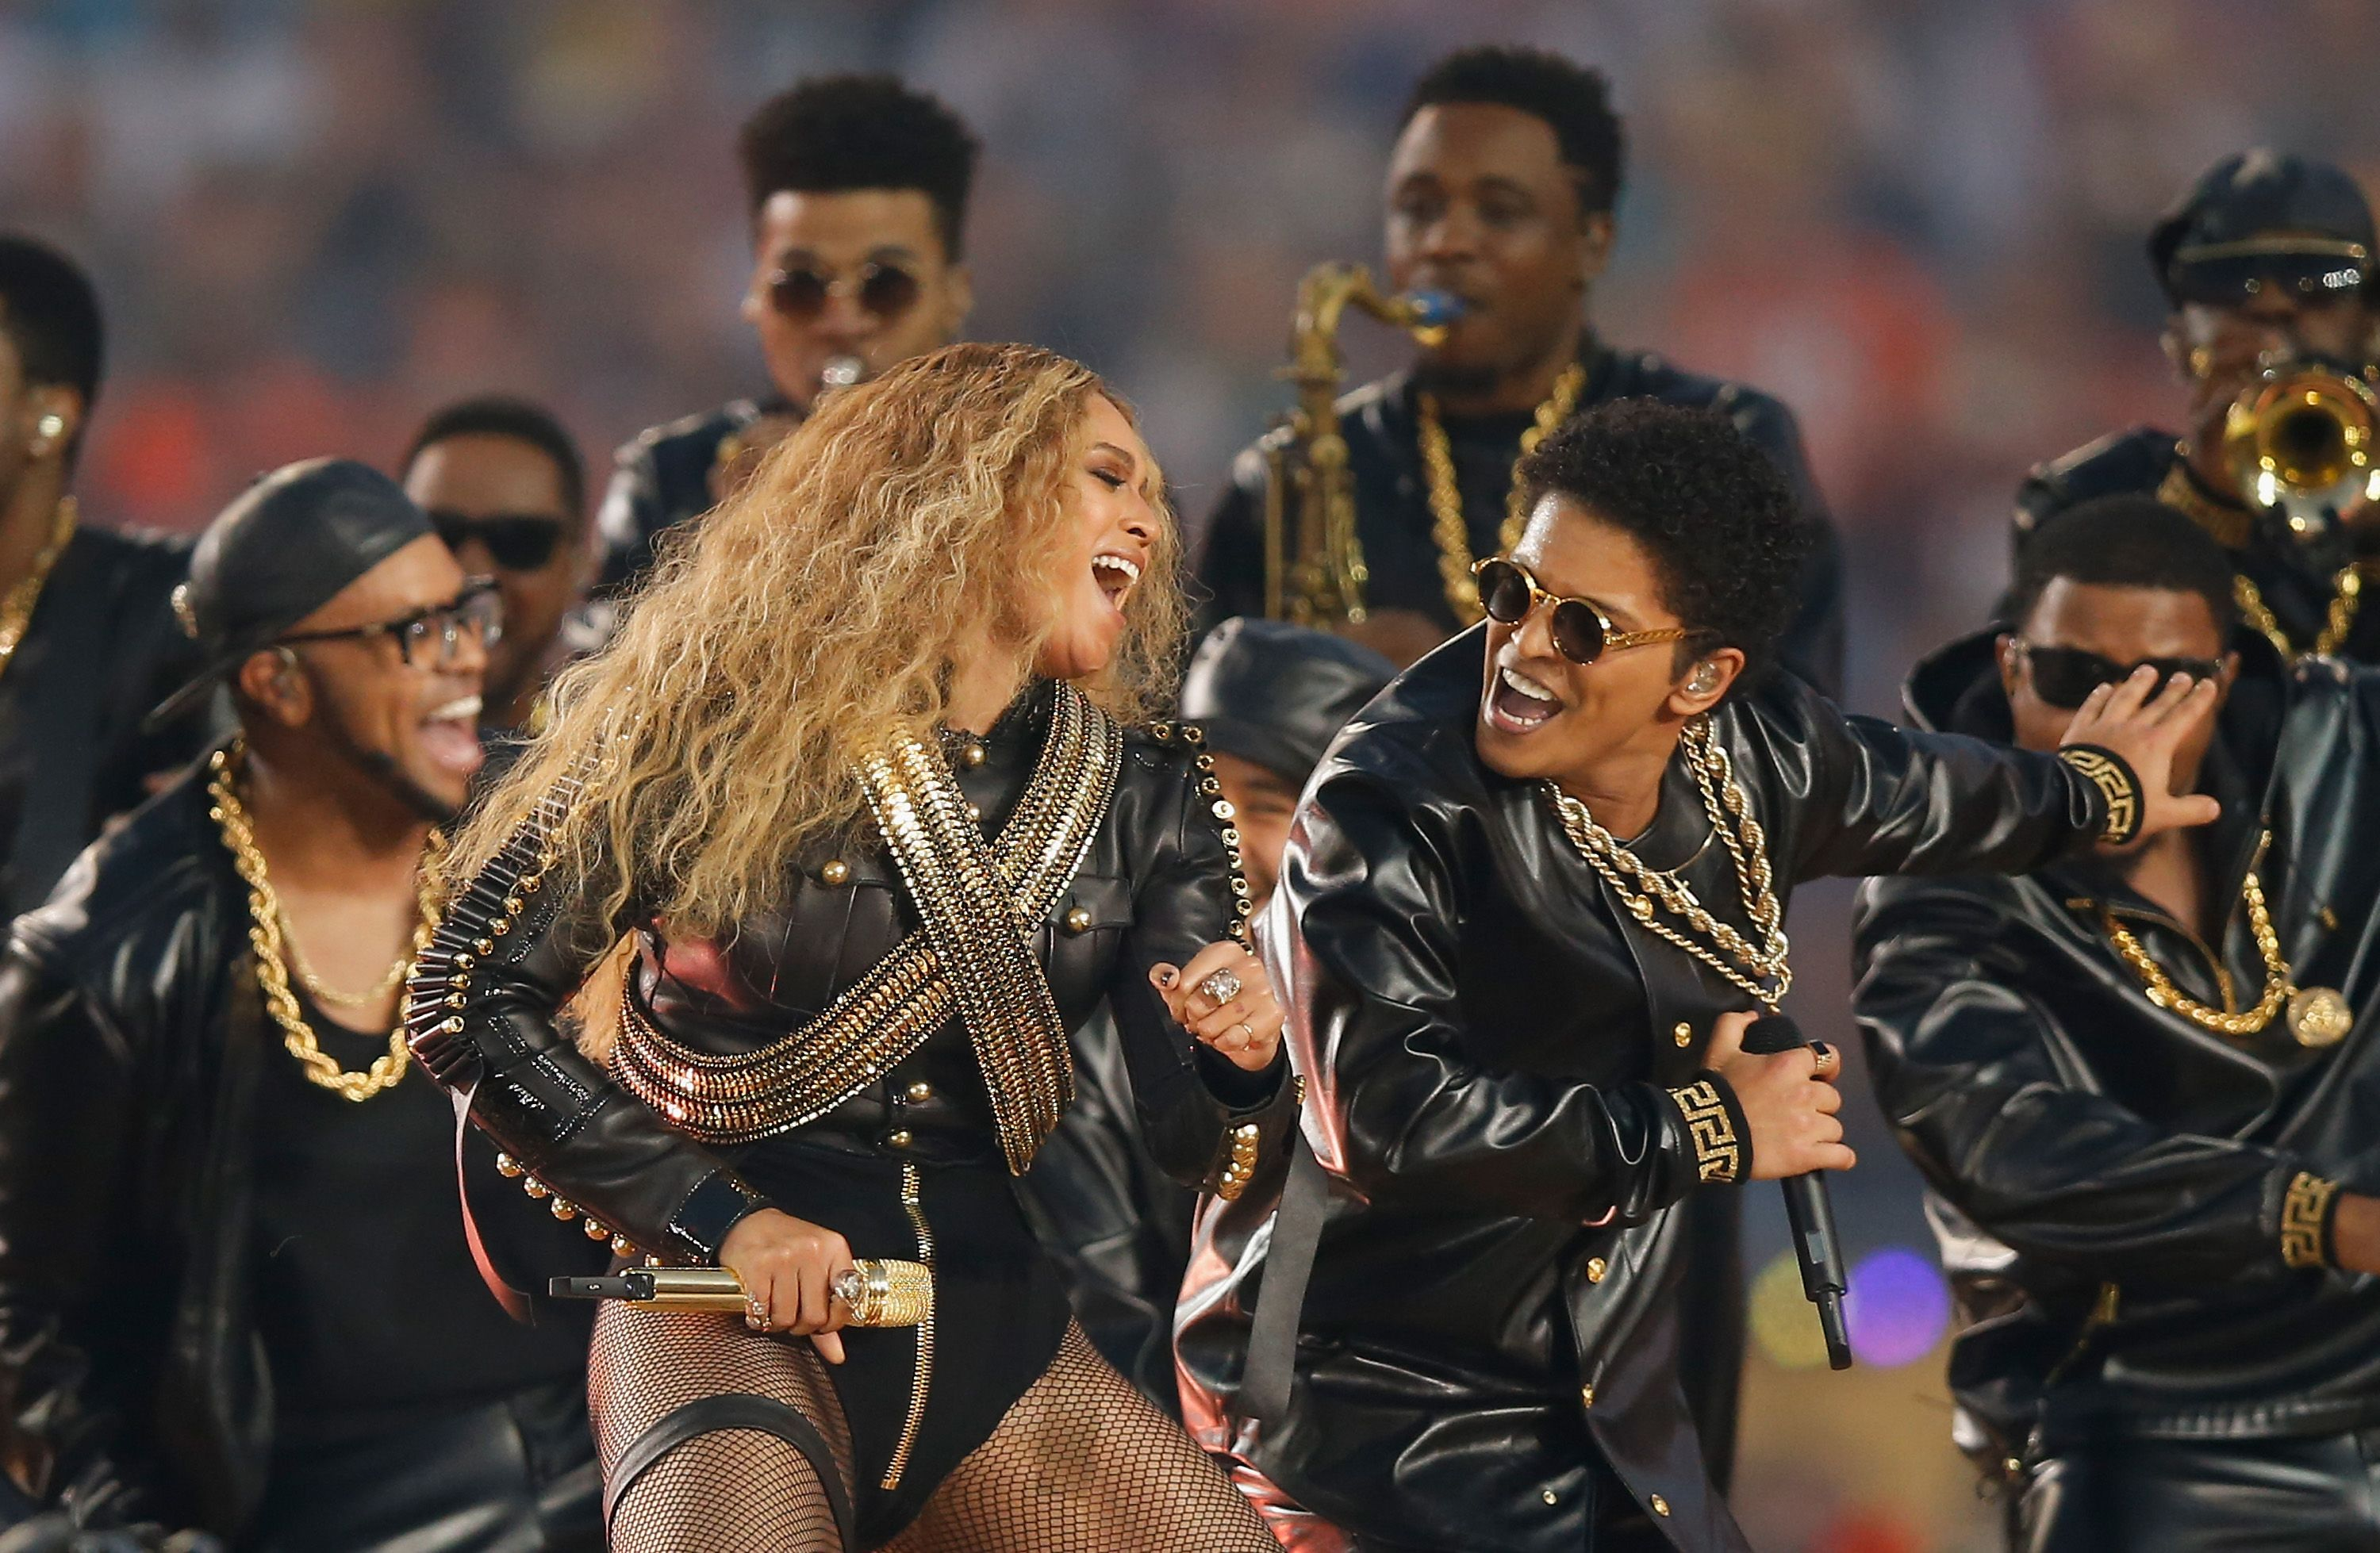 Beyonce at the Pepsi Super Bowl 50 Halftime Show in February 2016 in Santa Clara, California | Source: Getty Images